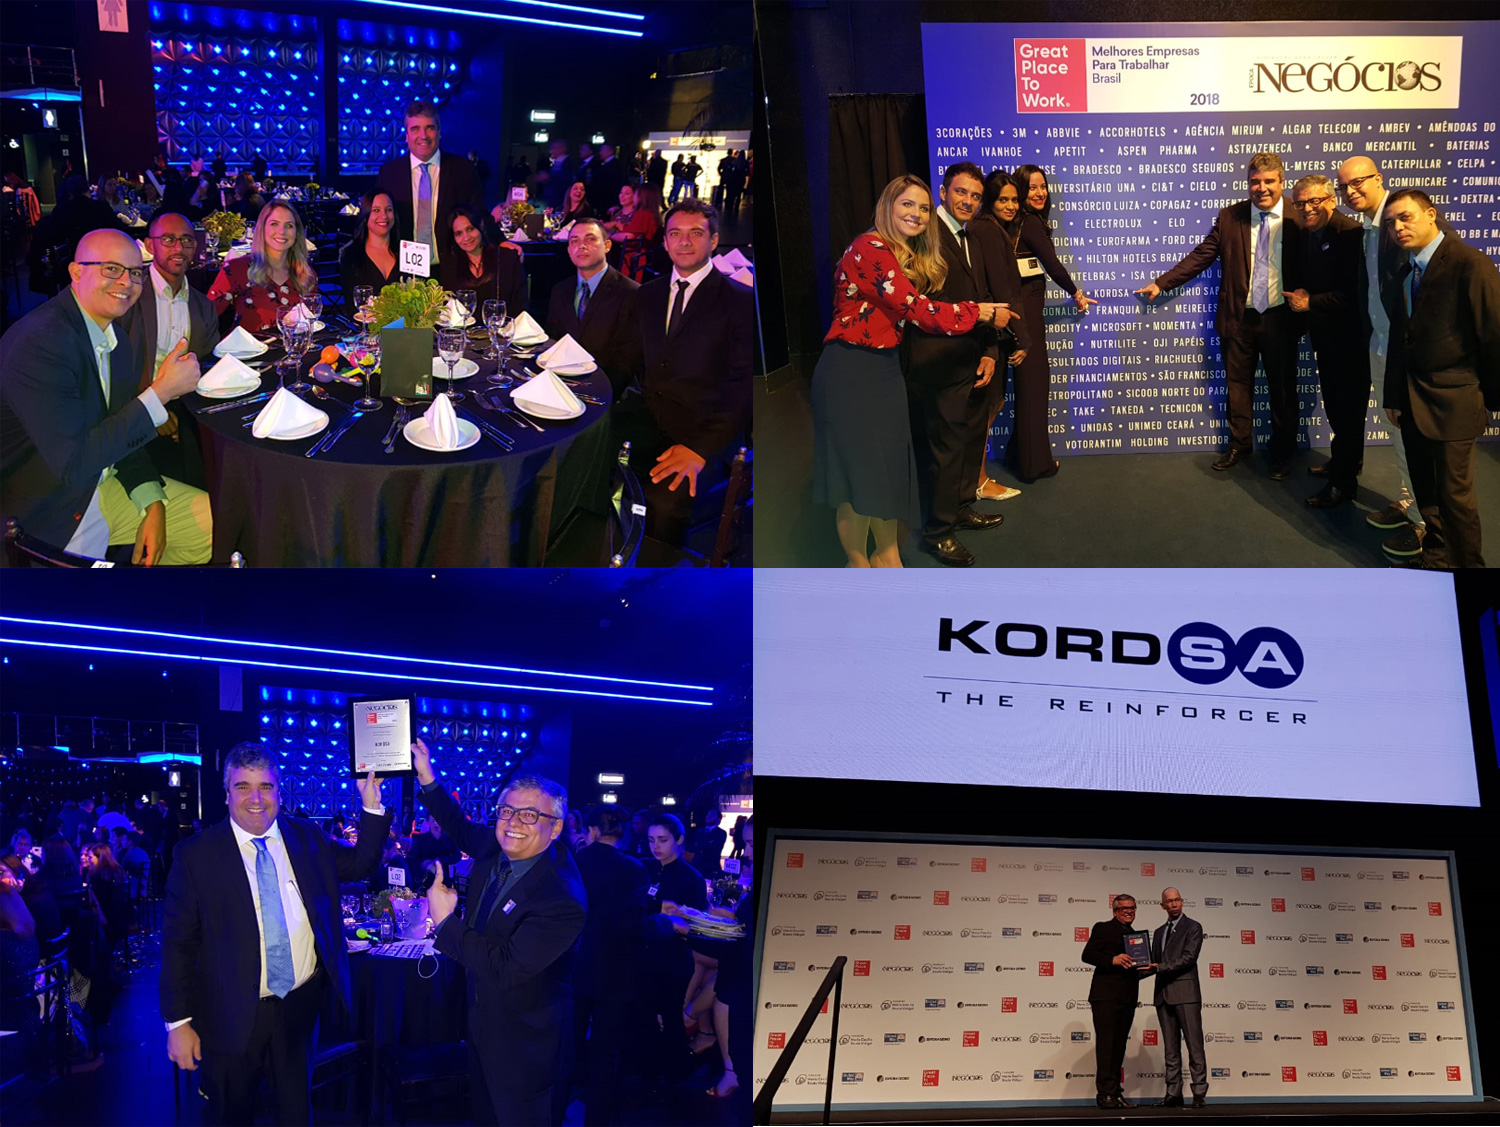 Kordsa receives two global awards Kordsa among great place to work in Brasil for the three years in a row